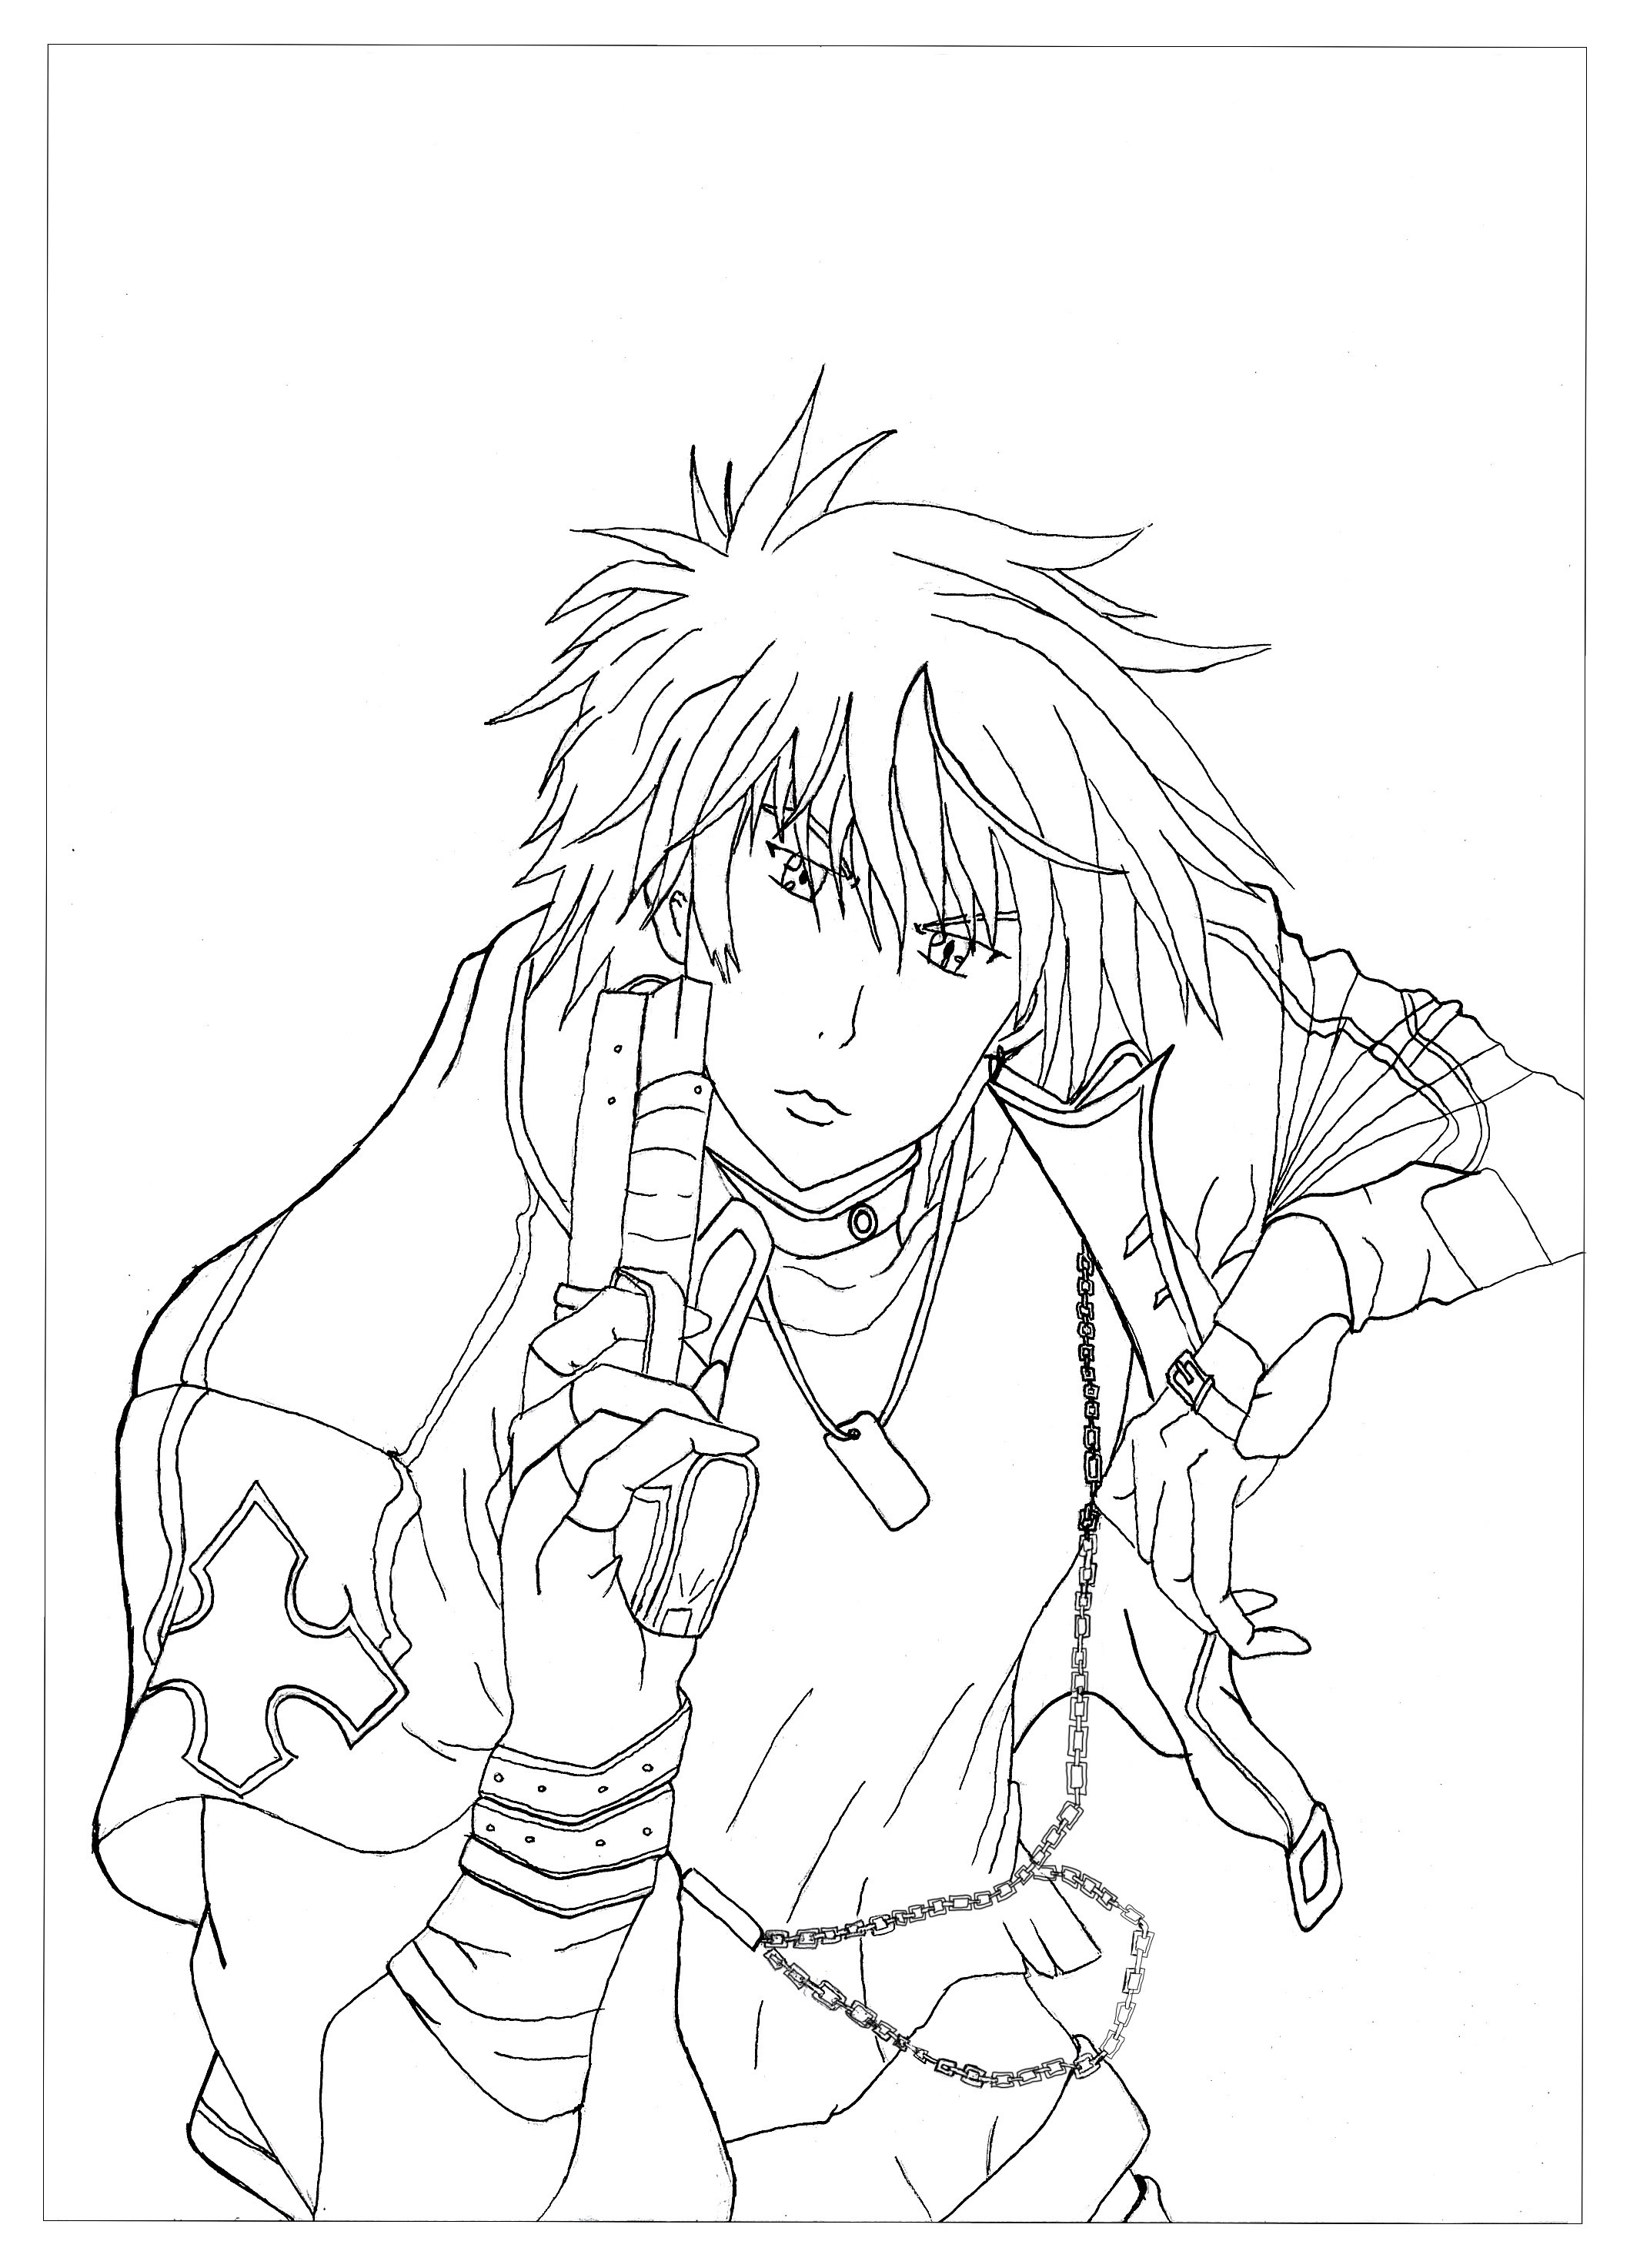 Manga Anime Coloring Pages For Adults